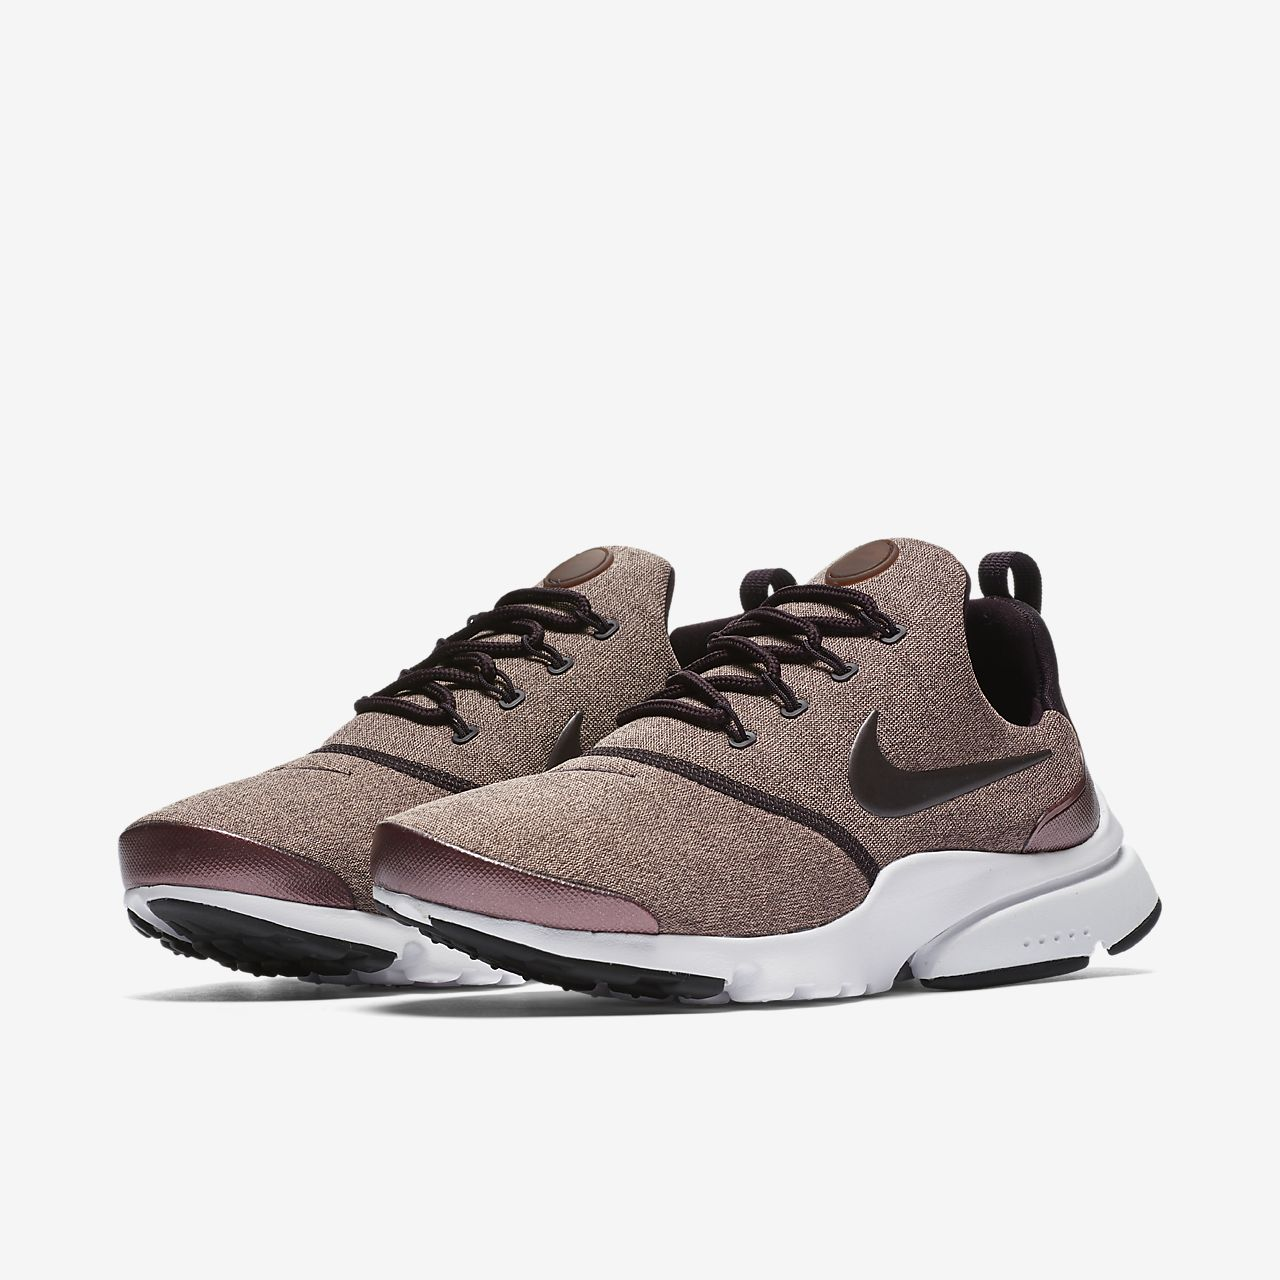 presto single girls Shop the nike air presto at footaction entire order must ship to a single address nike air presto - women's width - b - medium.